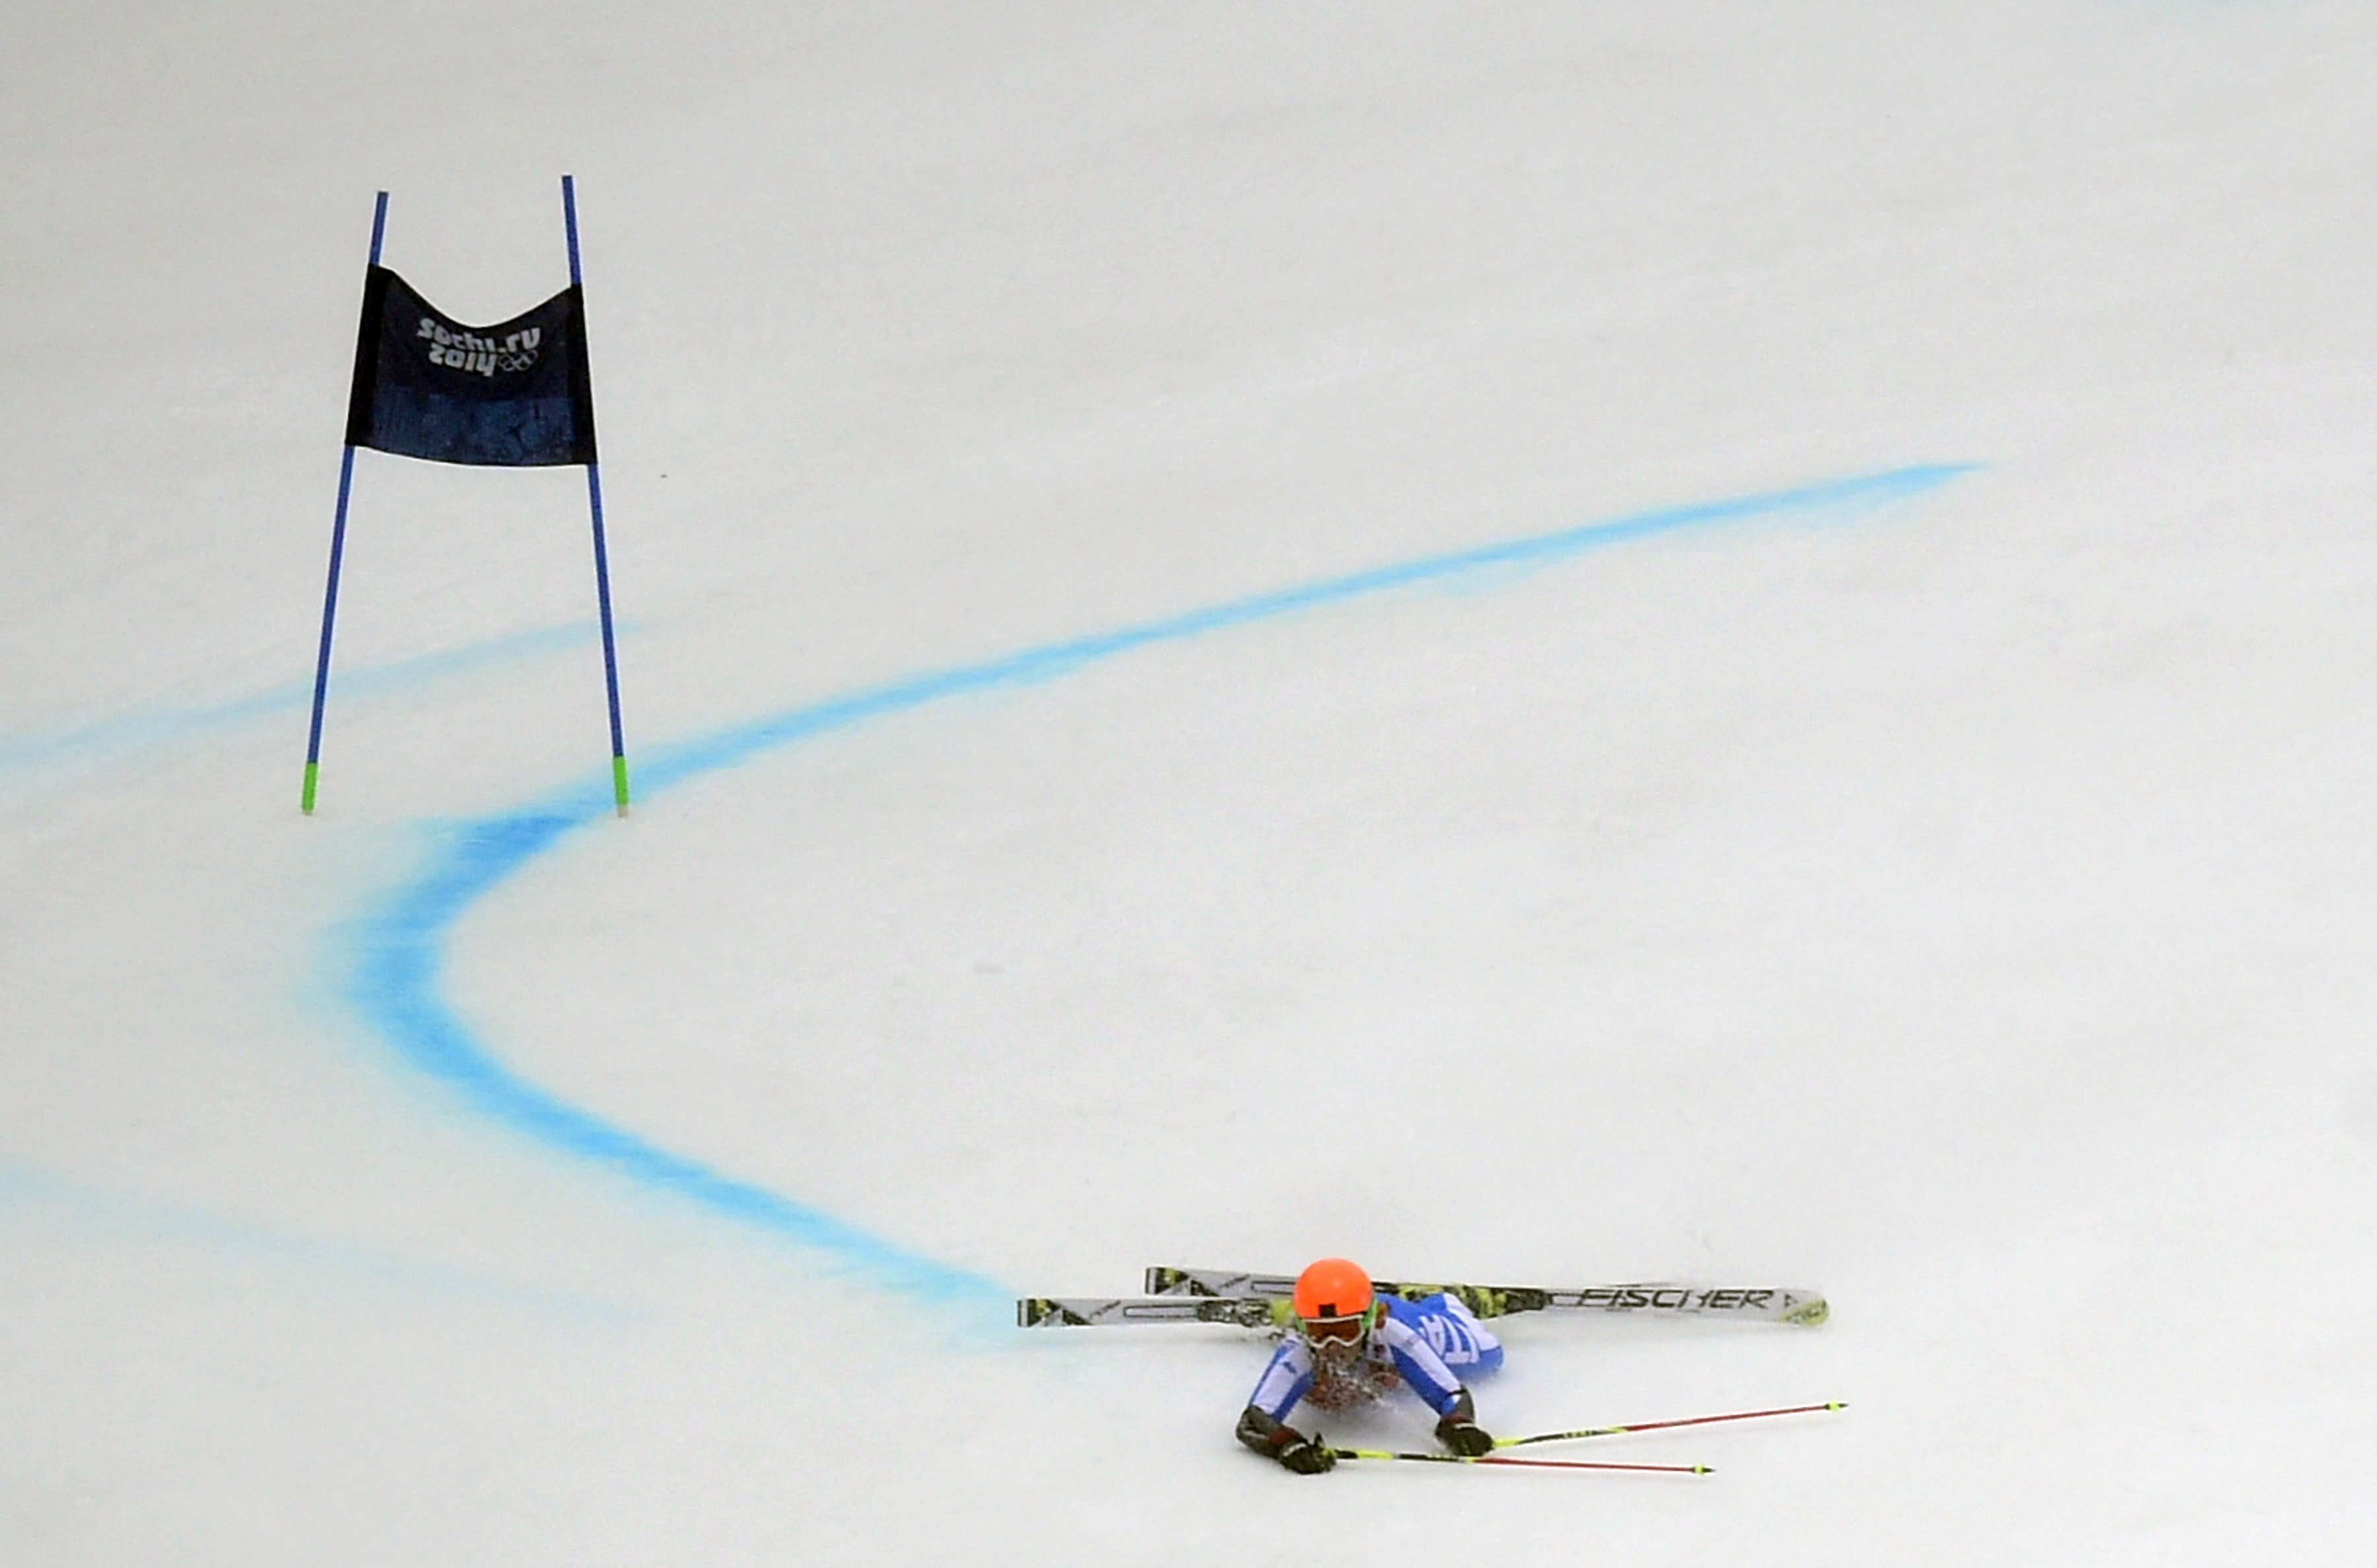 Italy's Denise Karbon lies on the slope after falling during the Women's Alpine Skiing Giant Slalom Run 2 at the Rosa Khutor Alpine Center.